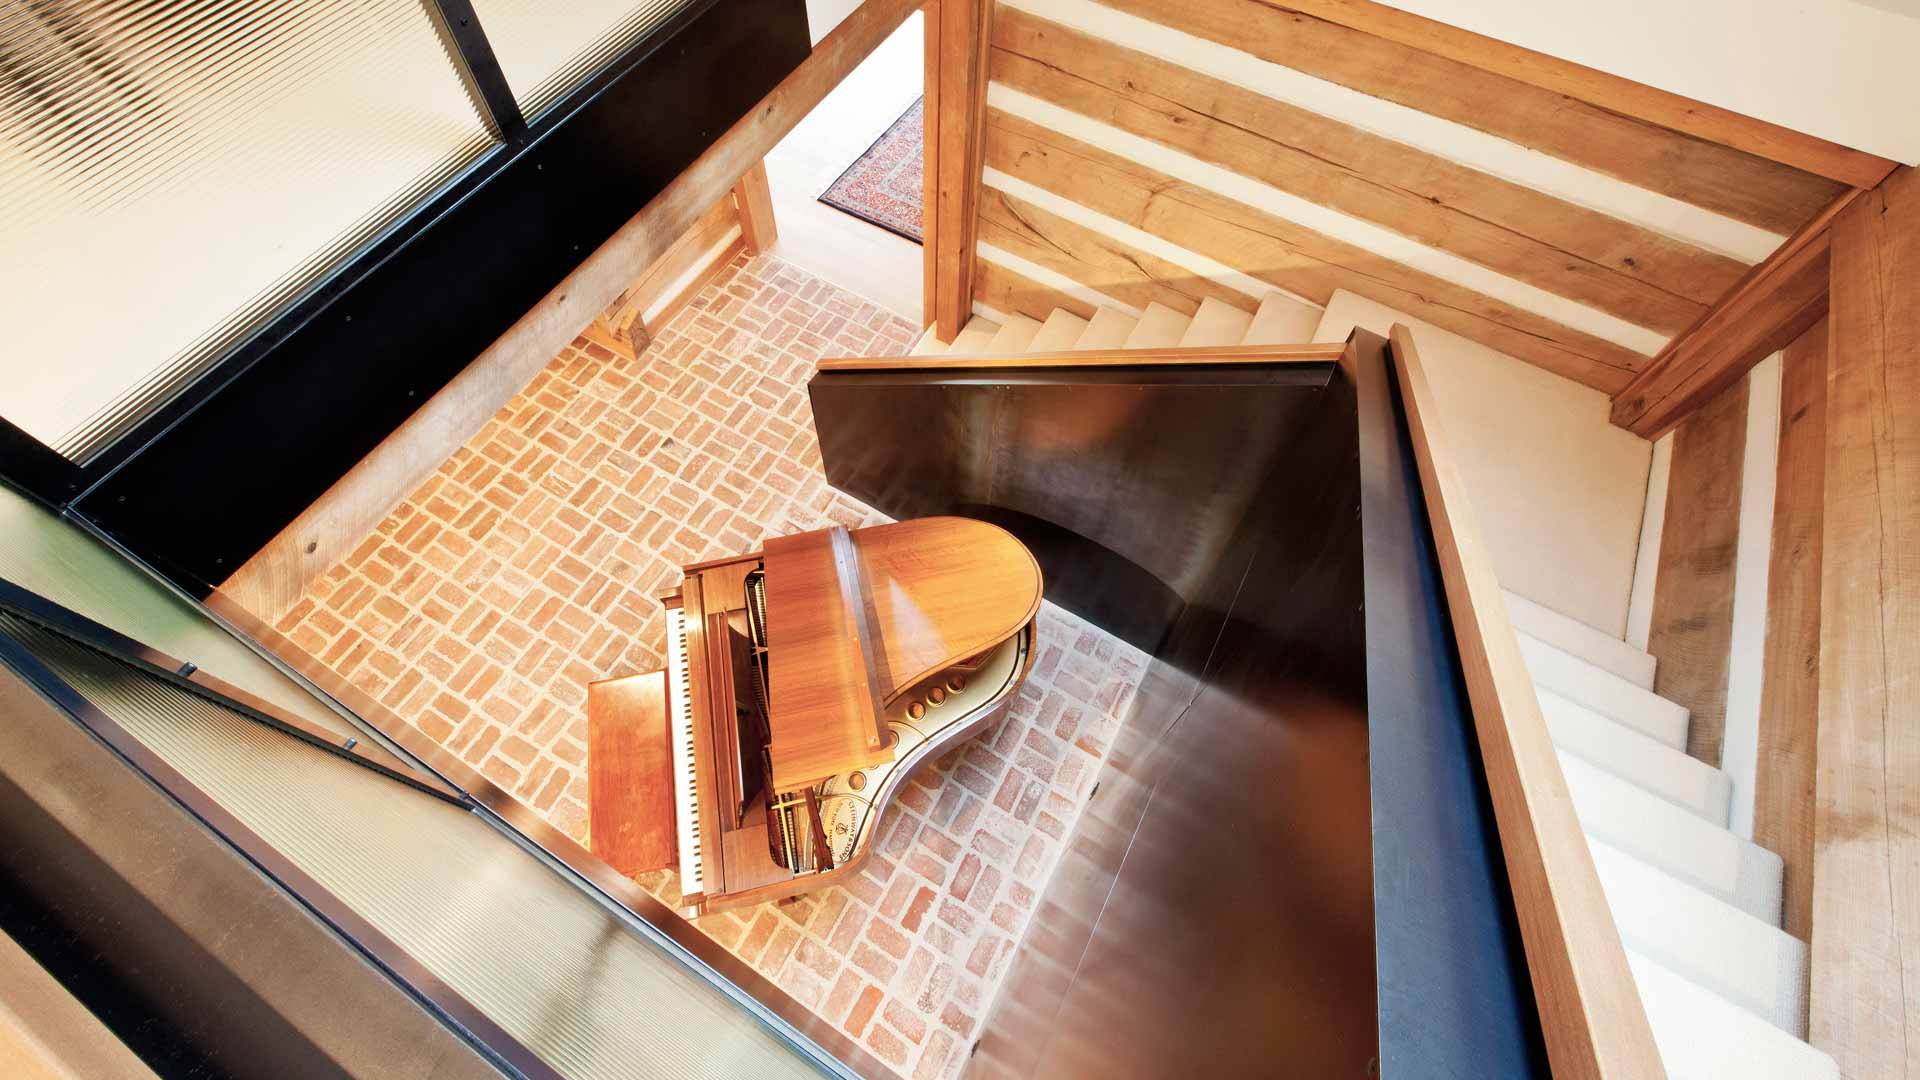 Scandinavian Rustic Interior Cabin - Stair Detail - Christopher Short, Architect, Indianapolis, HAUS Architecture